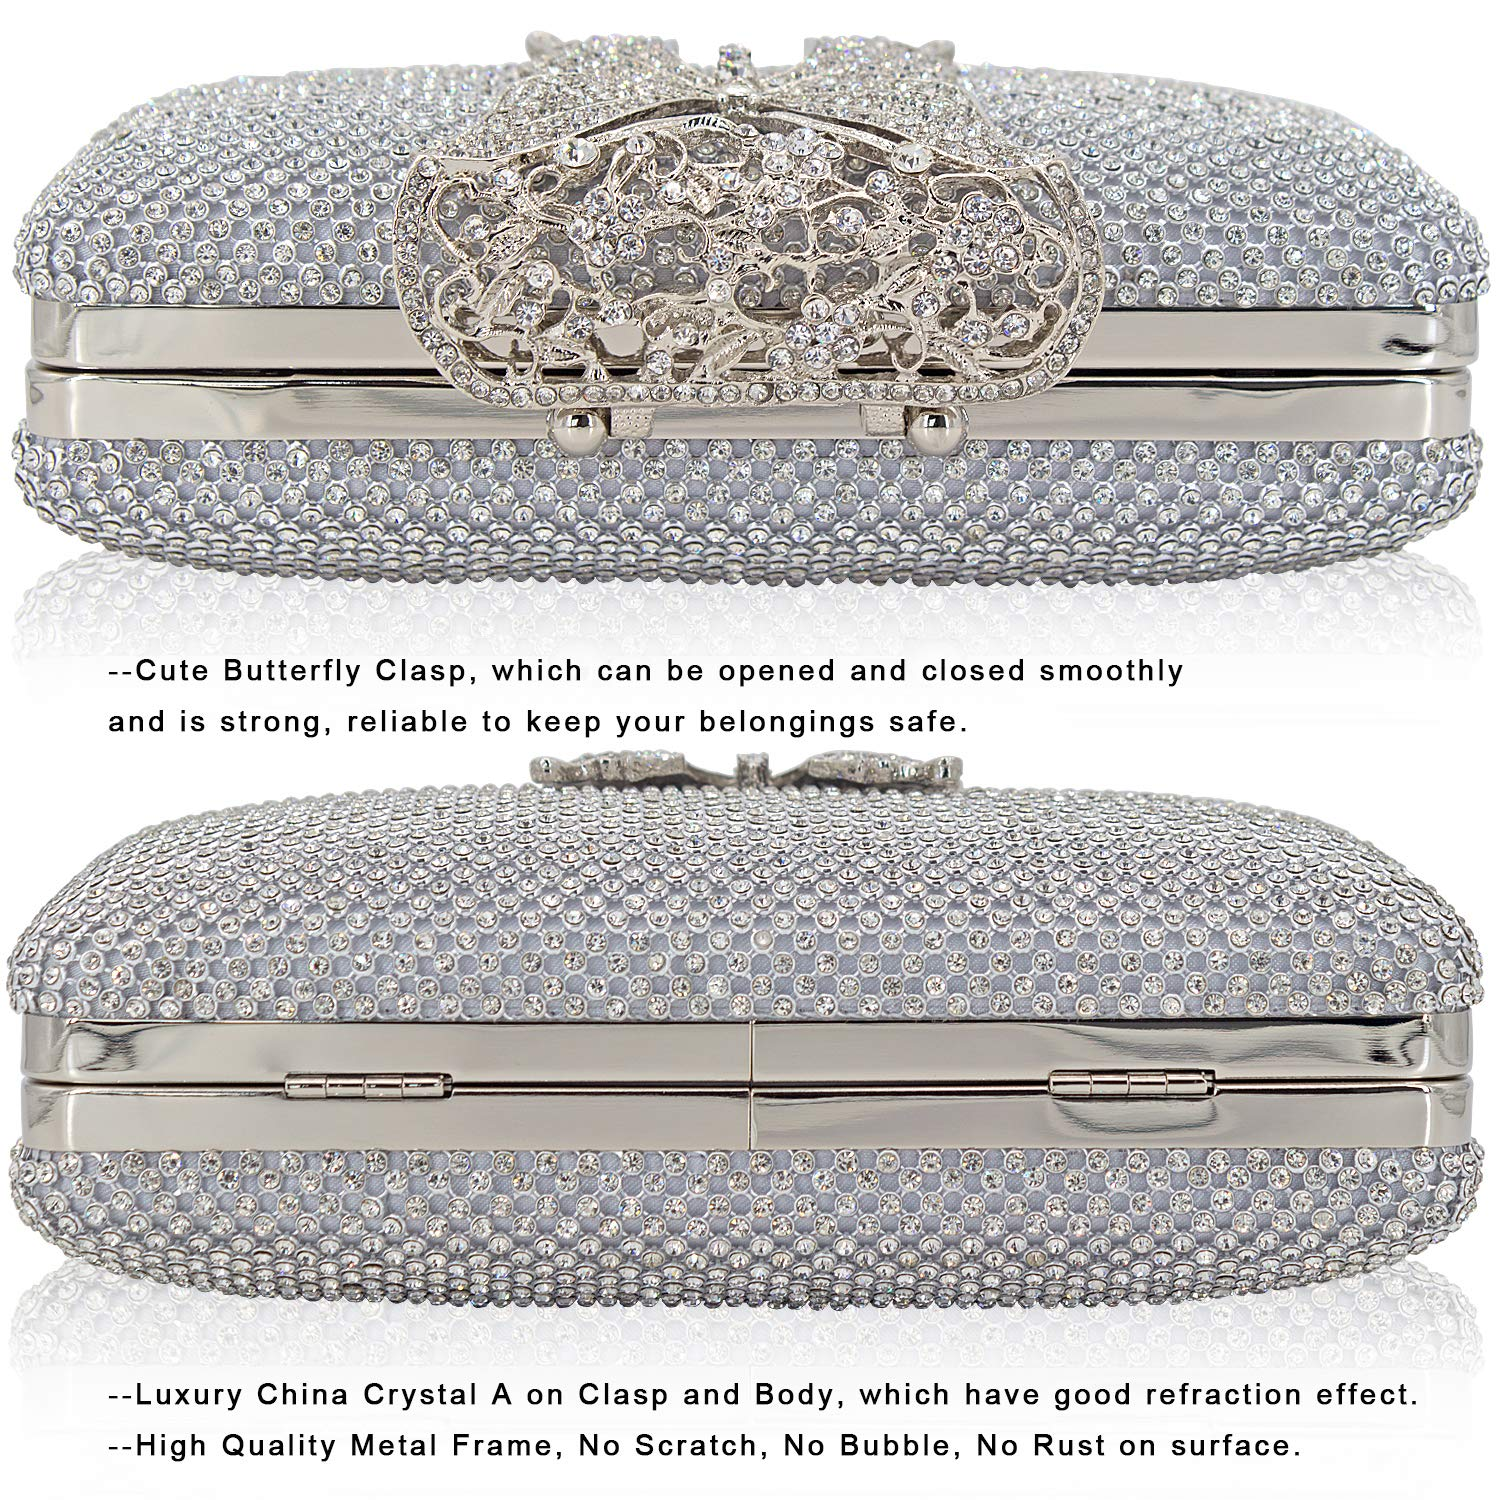 Dexmay Rhinestone Crystal Clutch Purse Butterfly Clasp Women Evening Bag for Formal Party Silver by DEXMAY DM (Image #3)